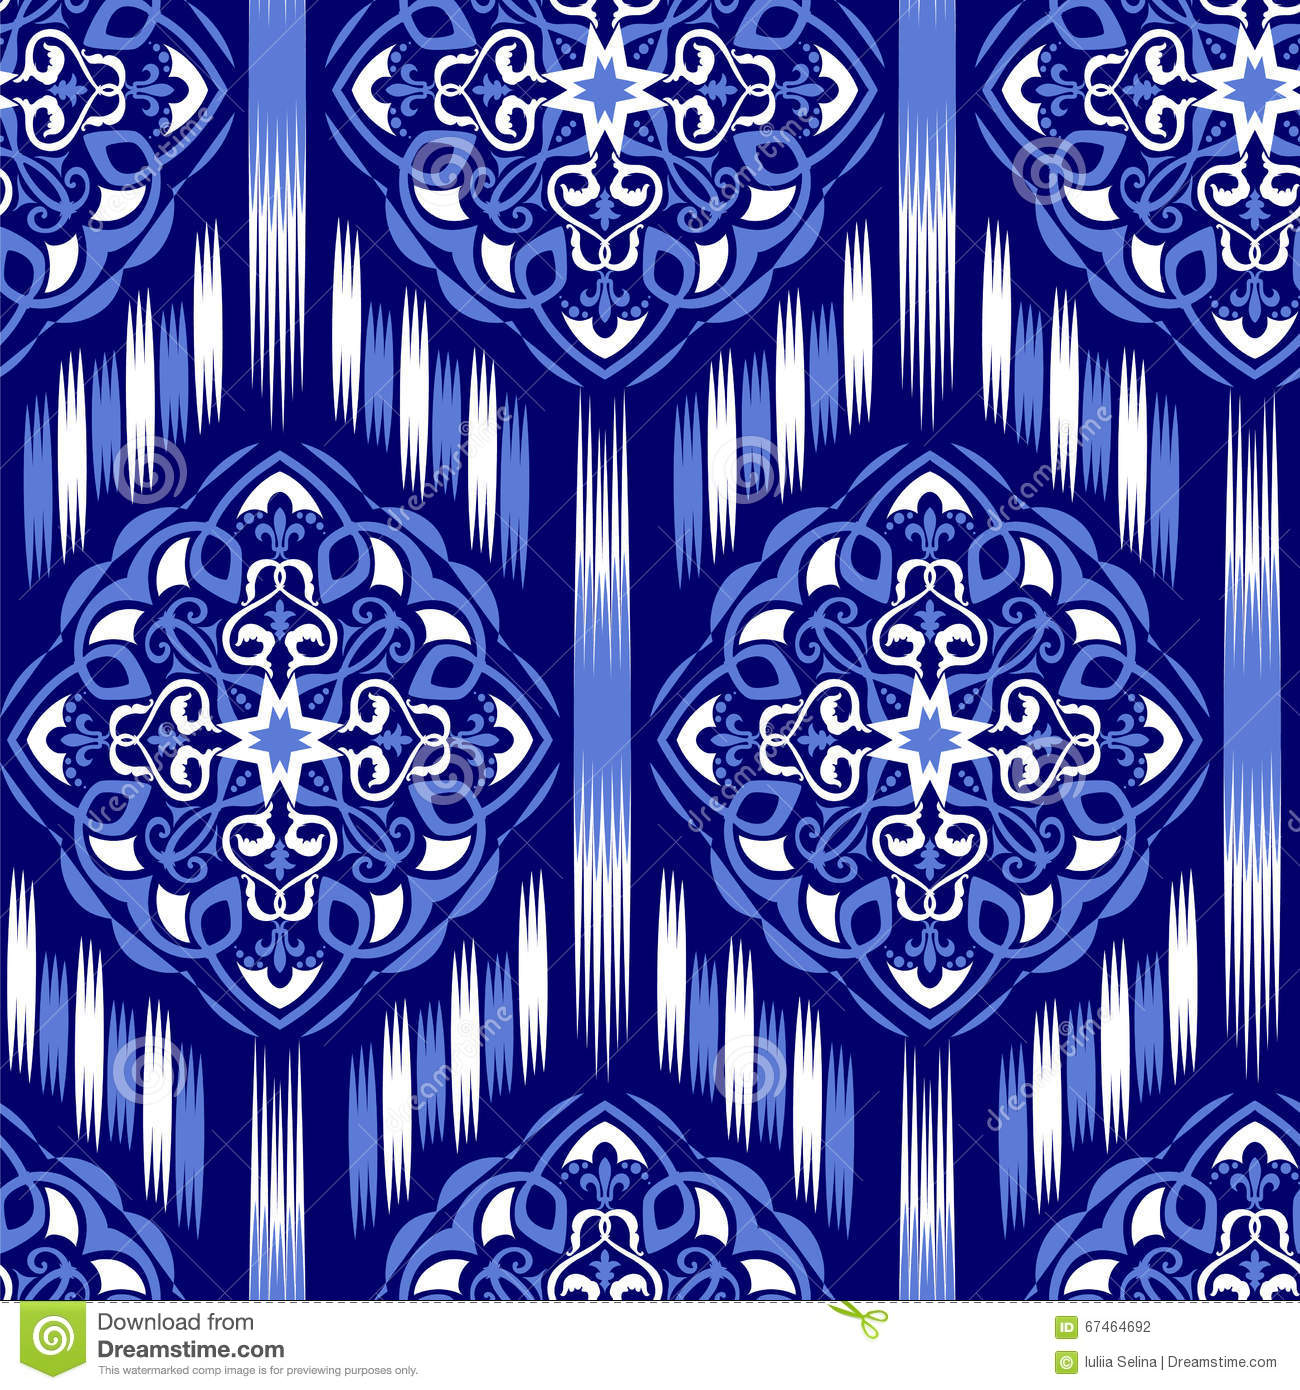 Blue Tribal Wallpapers: Ikat Ogee Background 17 Stock Photo. Image Of Fall, Arabic